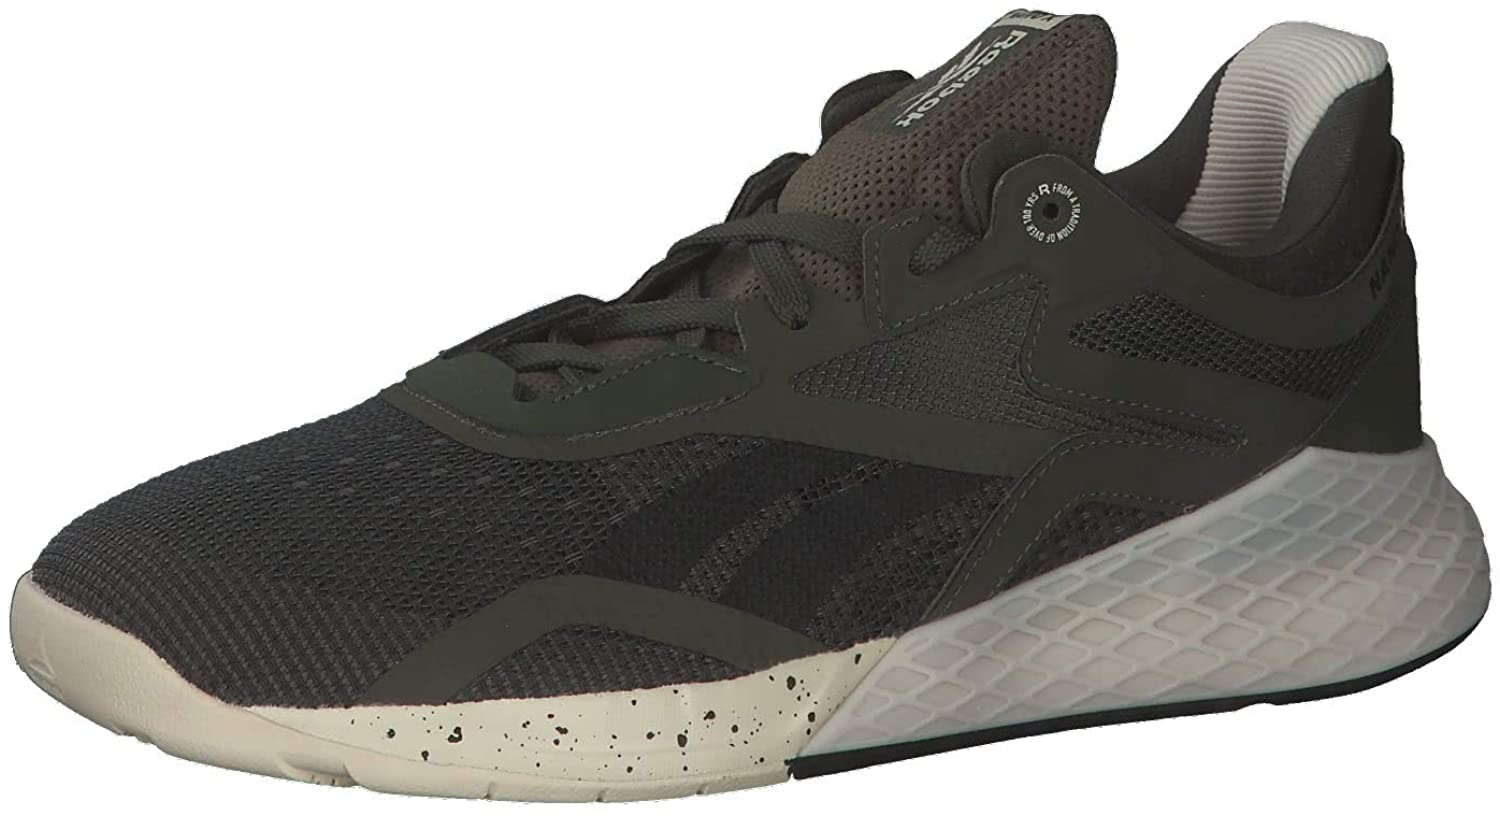 Reebok Crossfit Nano X Training Shoes - AW20-10.5 - Green